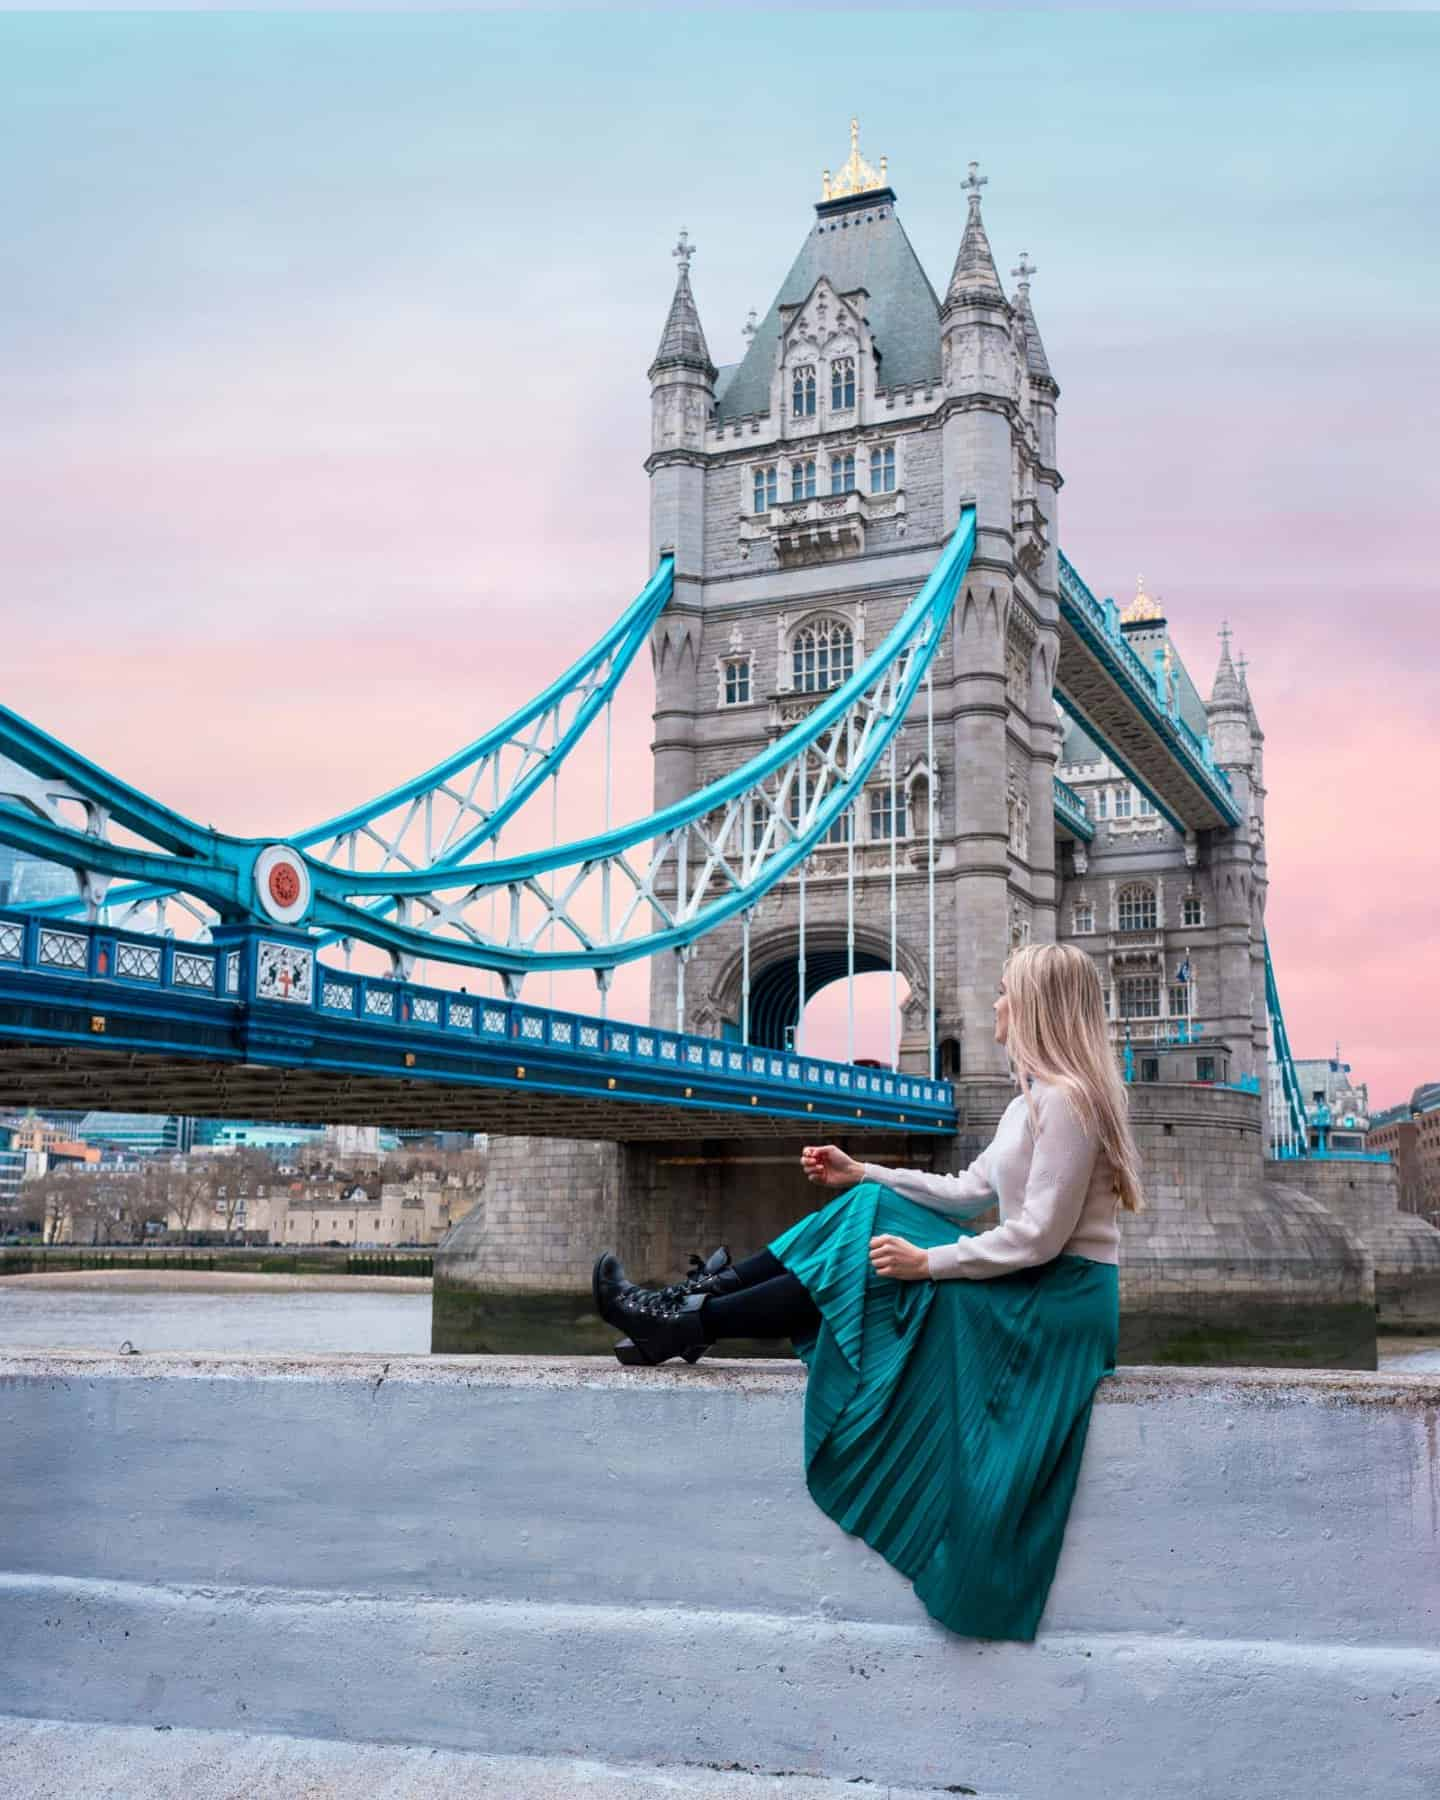 Sunset colours alight the sky behind Tower Bridge to create the perfect Instagrammable photo in London